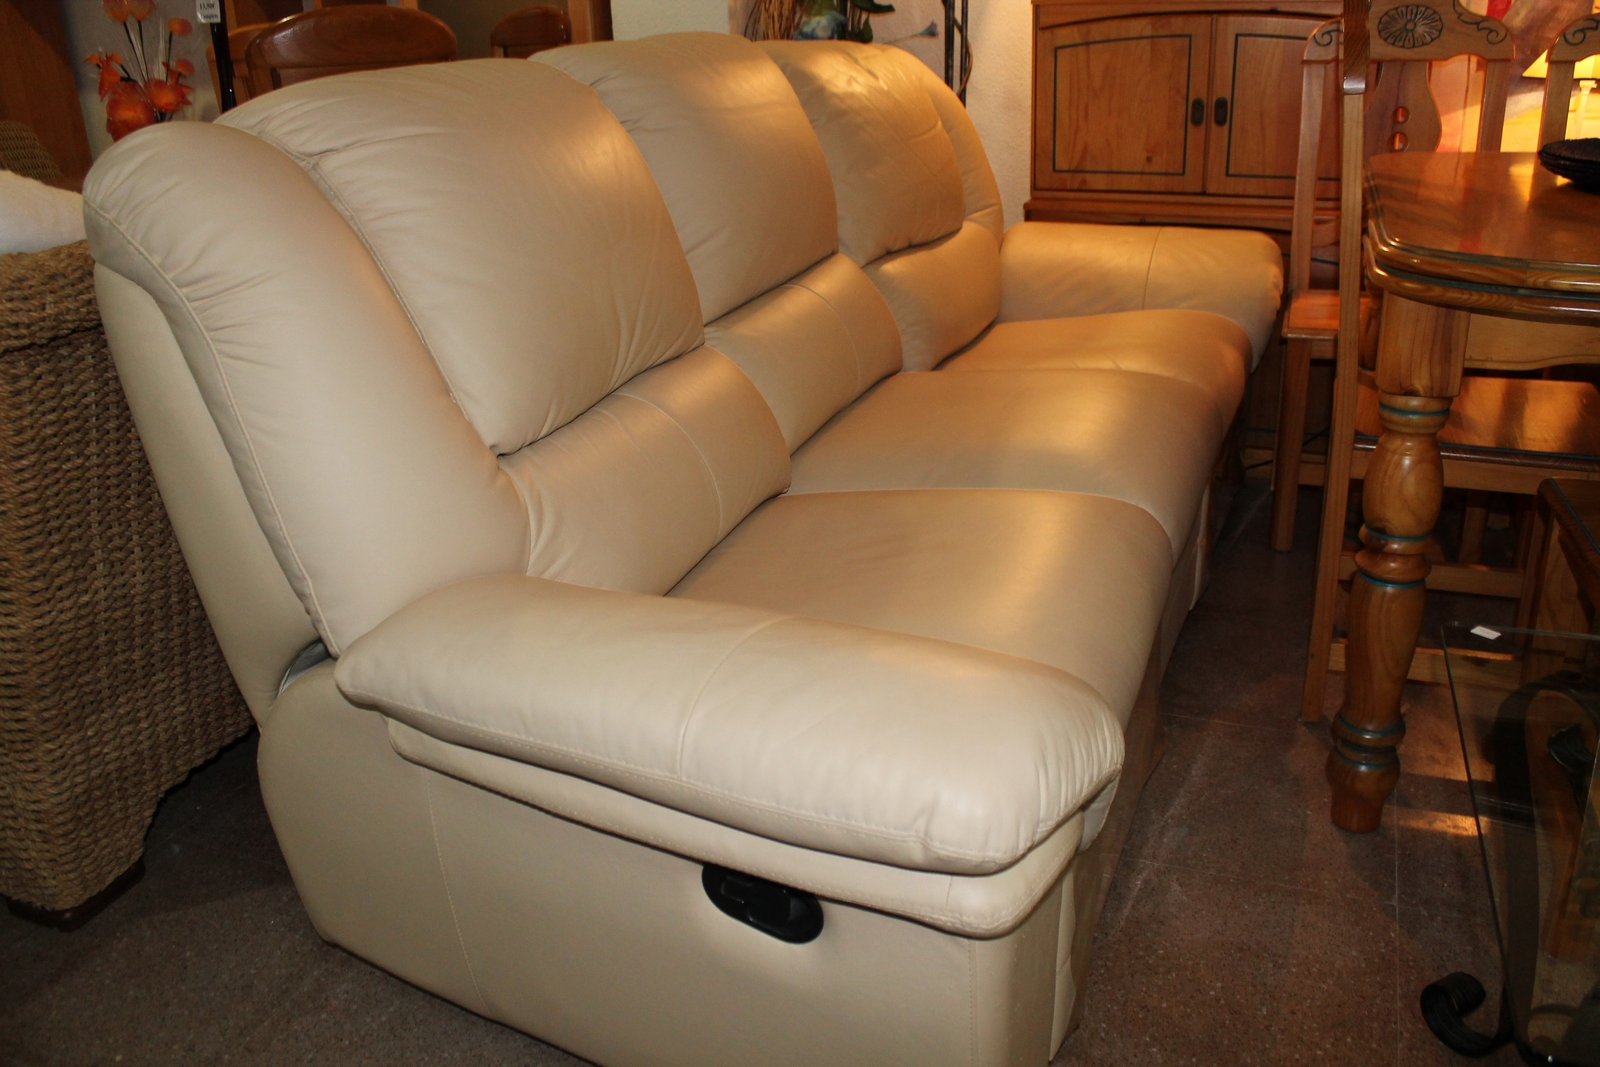 new2you furniture second hand sofas sofa beds for the living room rh new2you furniture com second hand sofas near me second hand sofas seats in kenya